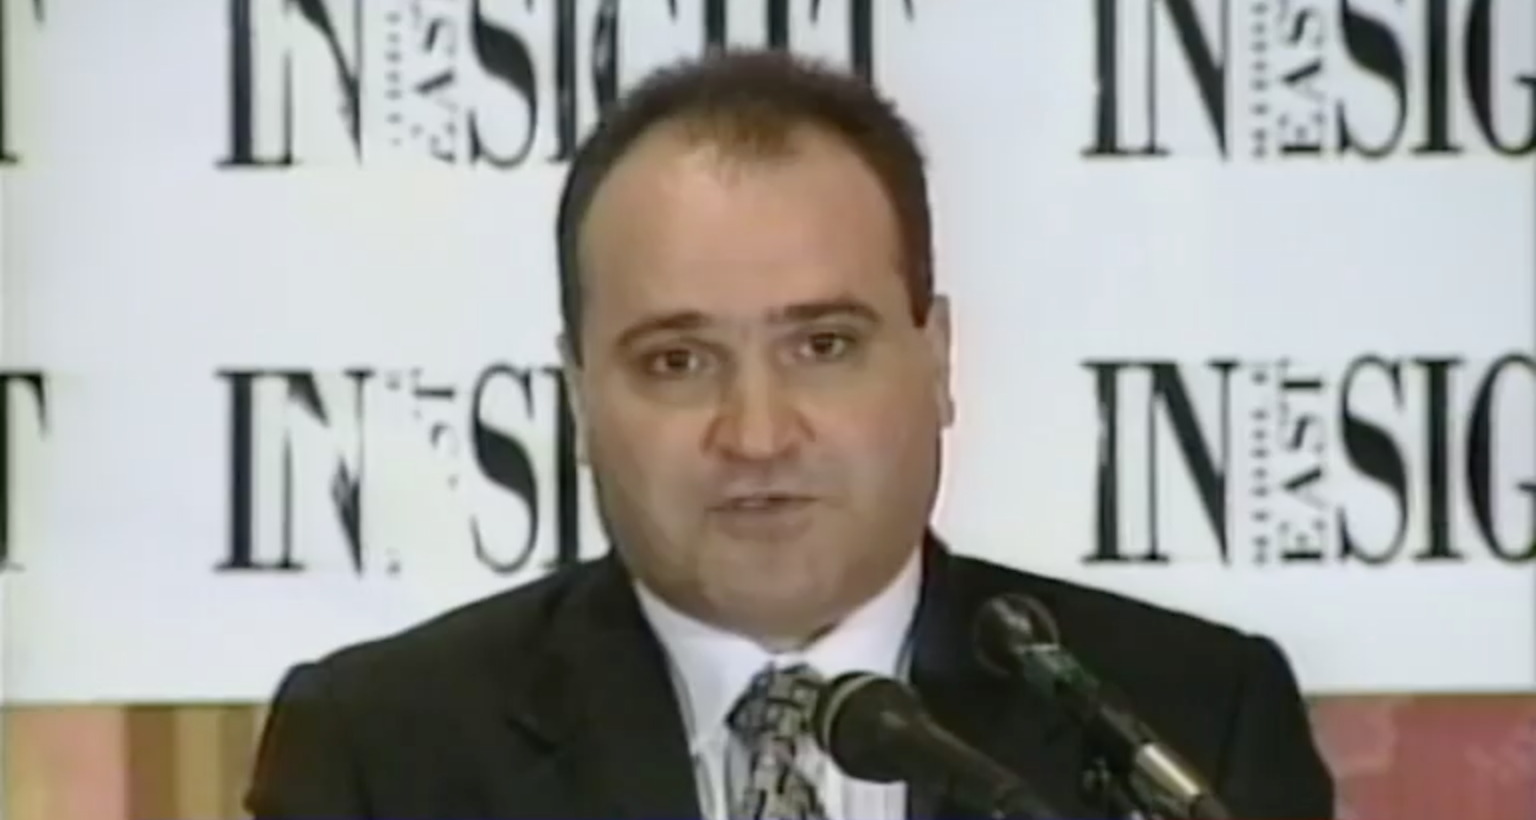 A screen grab from C-Span shows George Nader speaking at an event discussing Iran's regional policies on June 17, 1998.